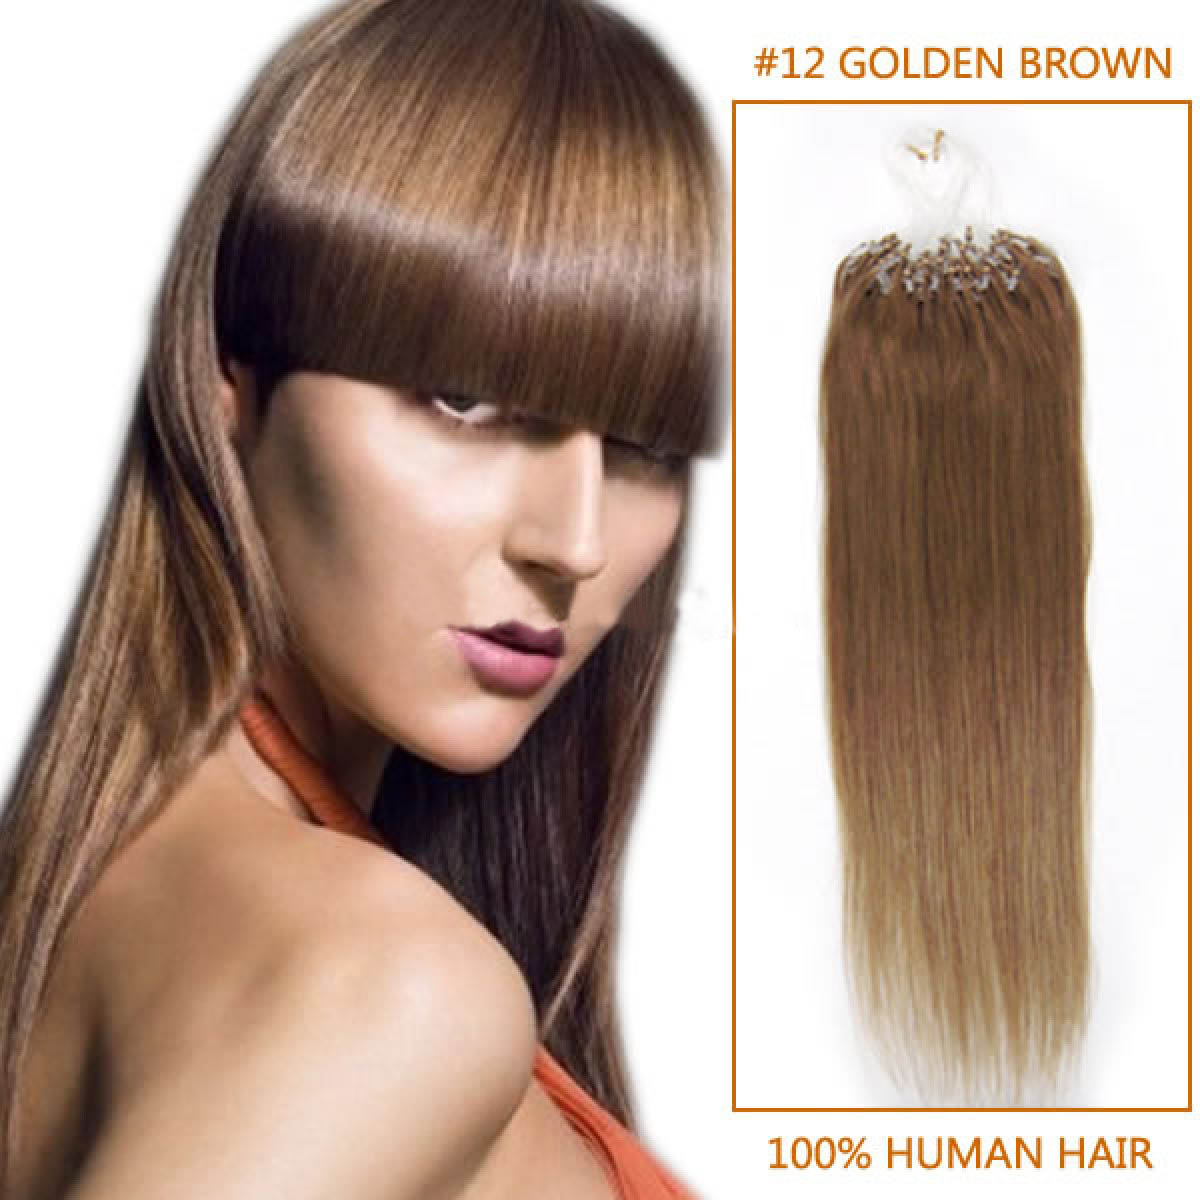 18 Inch #12 Golden Brown Micro Loop Human Hair Extensions 100S